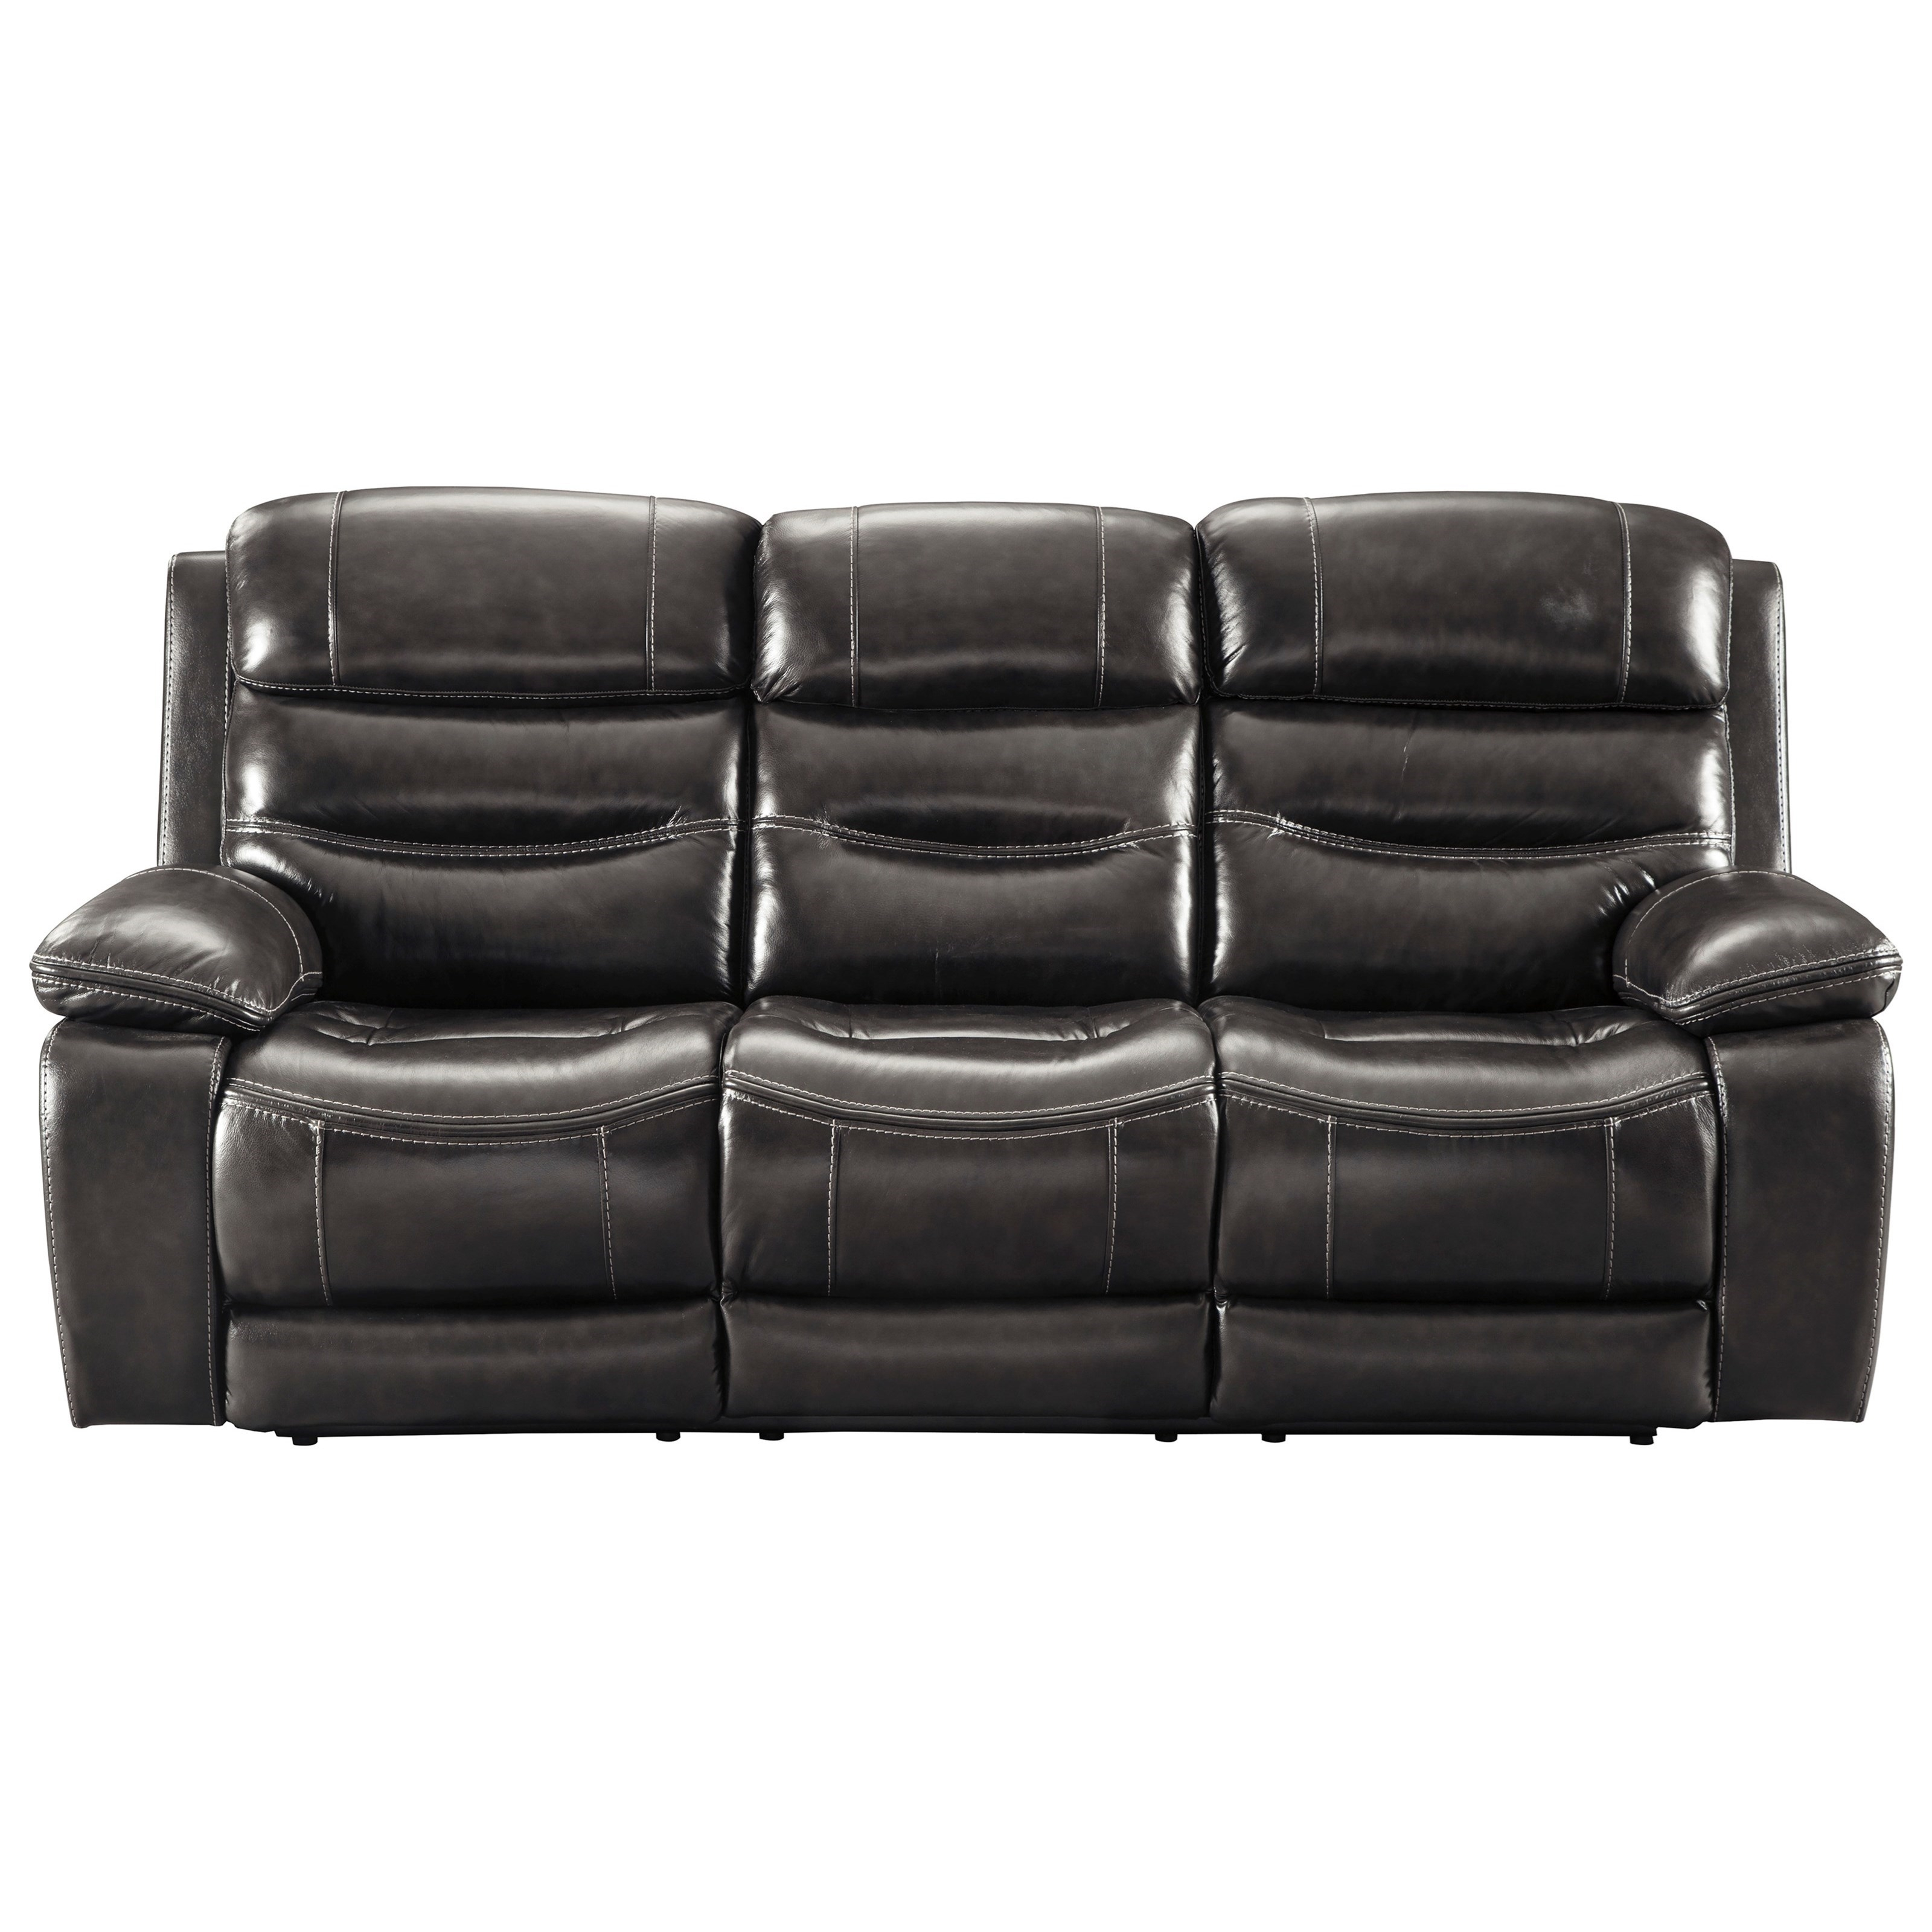 Benchcraftashley Pillement Leather Match Power Reclining Sofa W With Regard To Denali Charcoal Grey 6 Piece Reclining Sectionals With 2 Power Headrests (View 10 of 25)